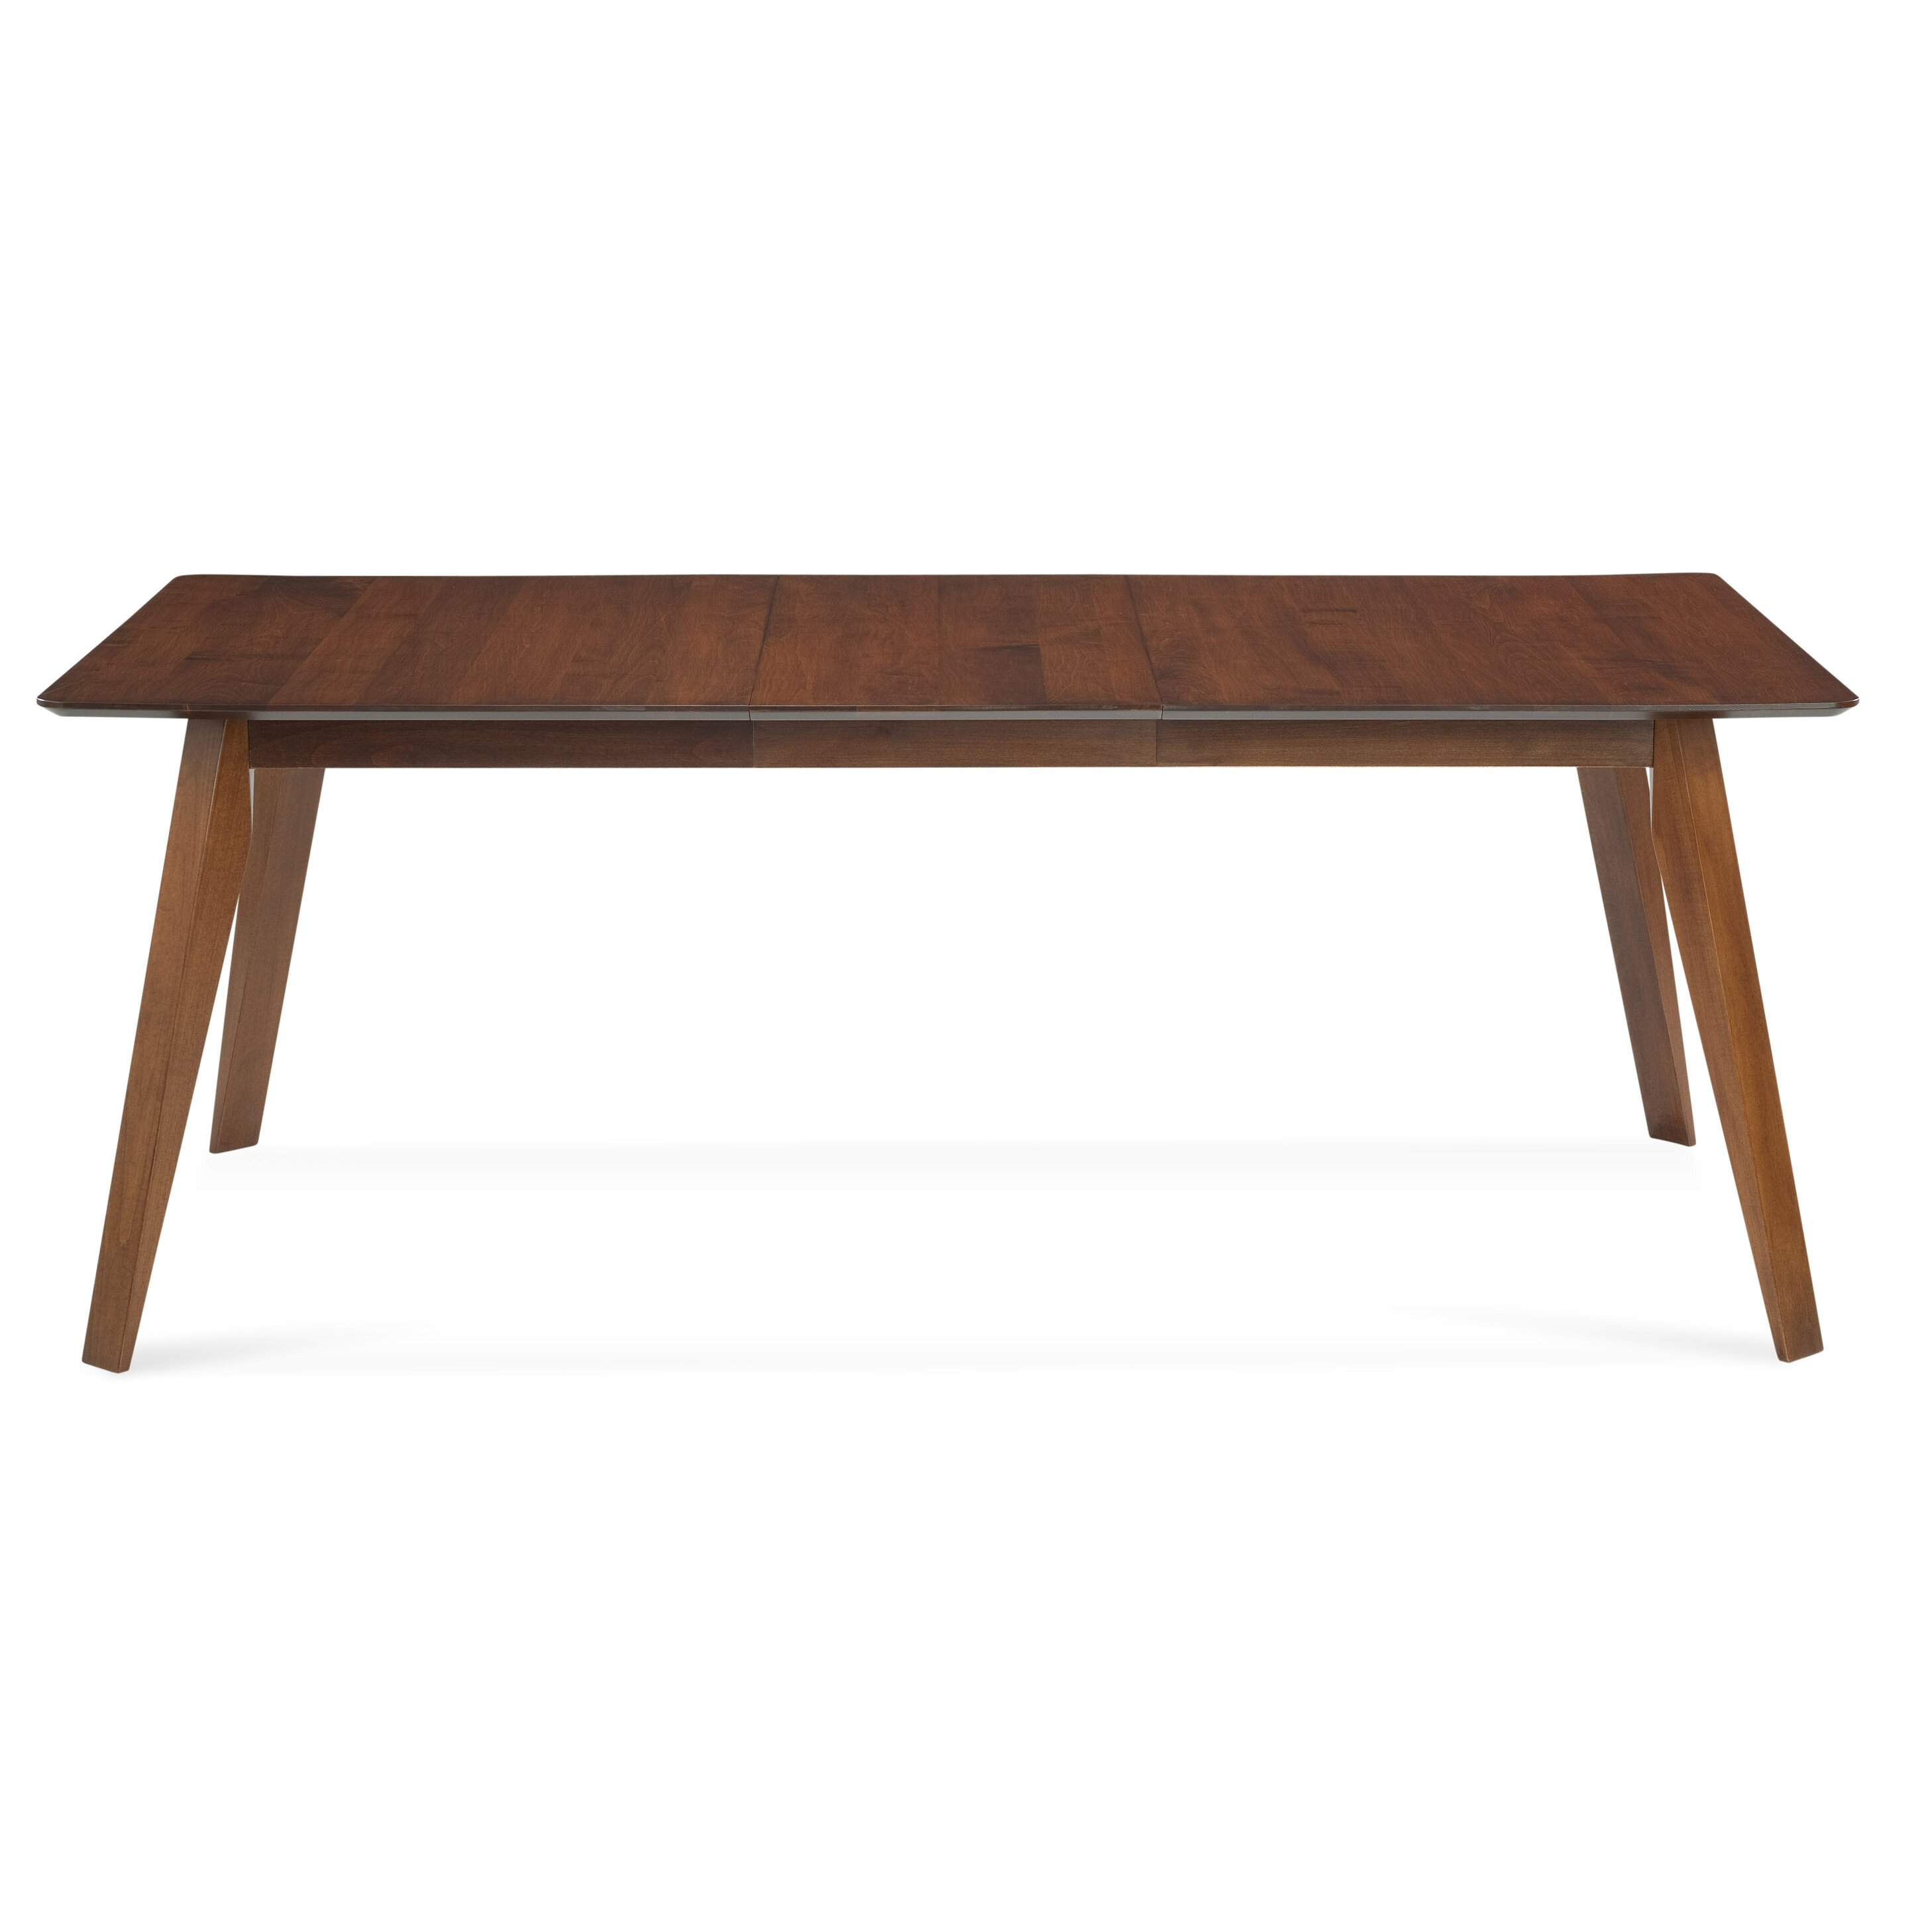 Saloom furniture spectra dining table wayfair for Wayfair dining table